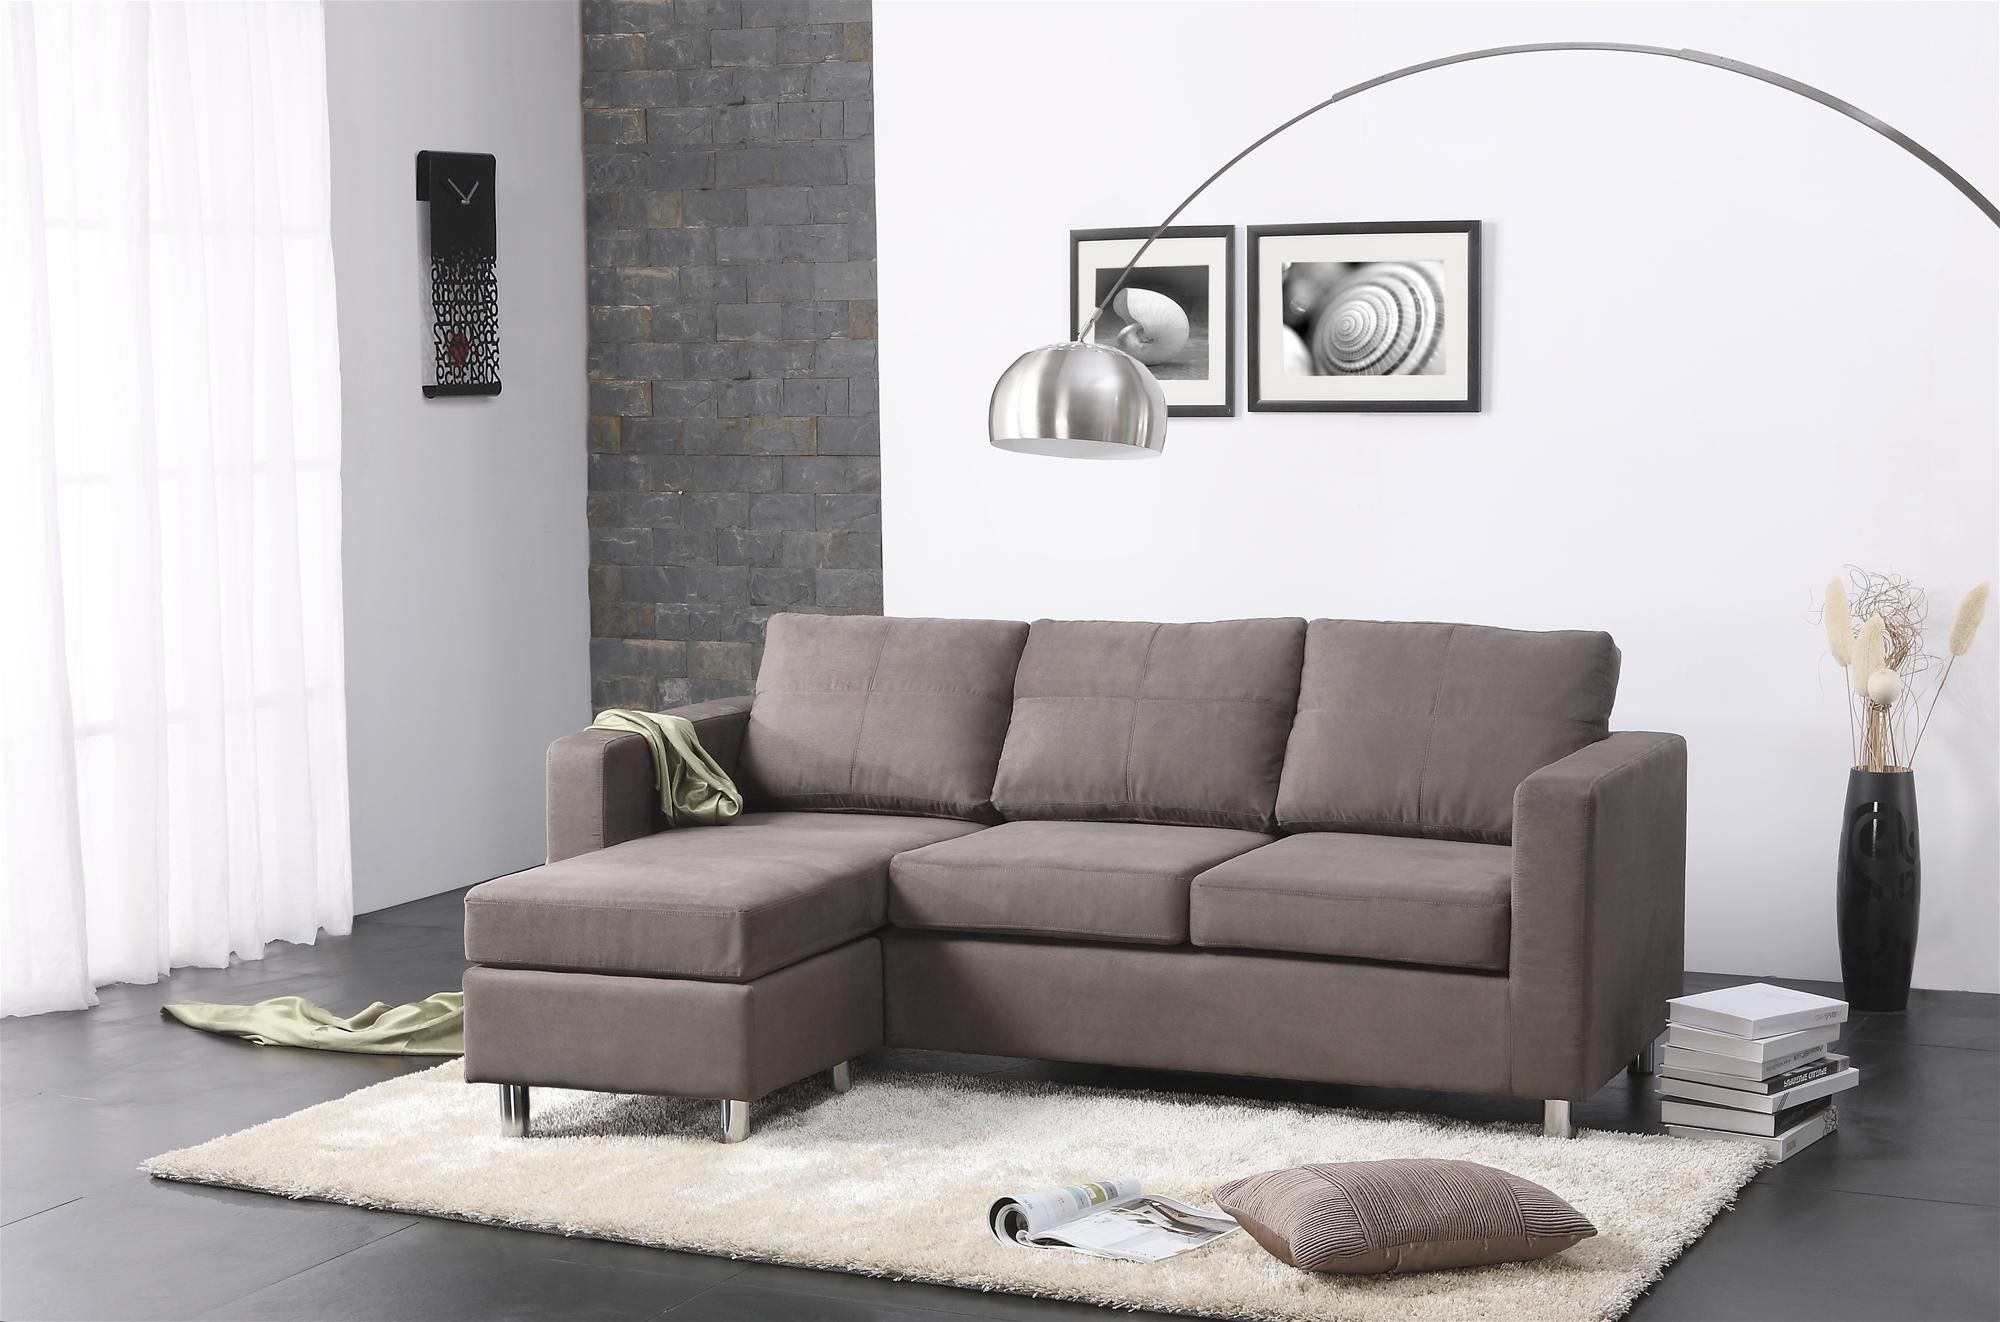 Couches for Small Living Rooms | HomesFeed